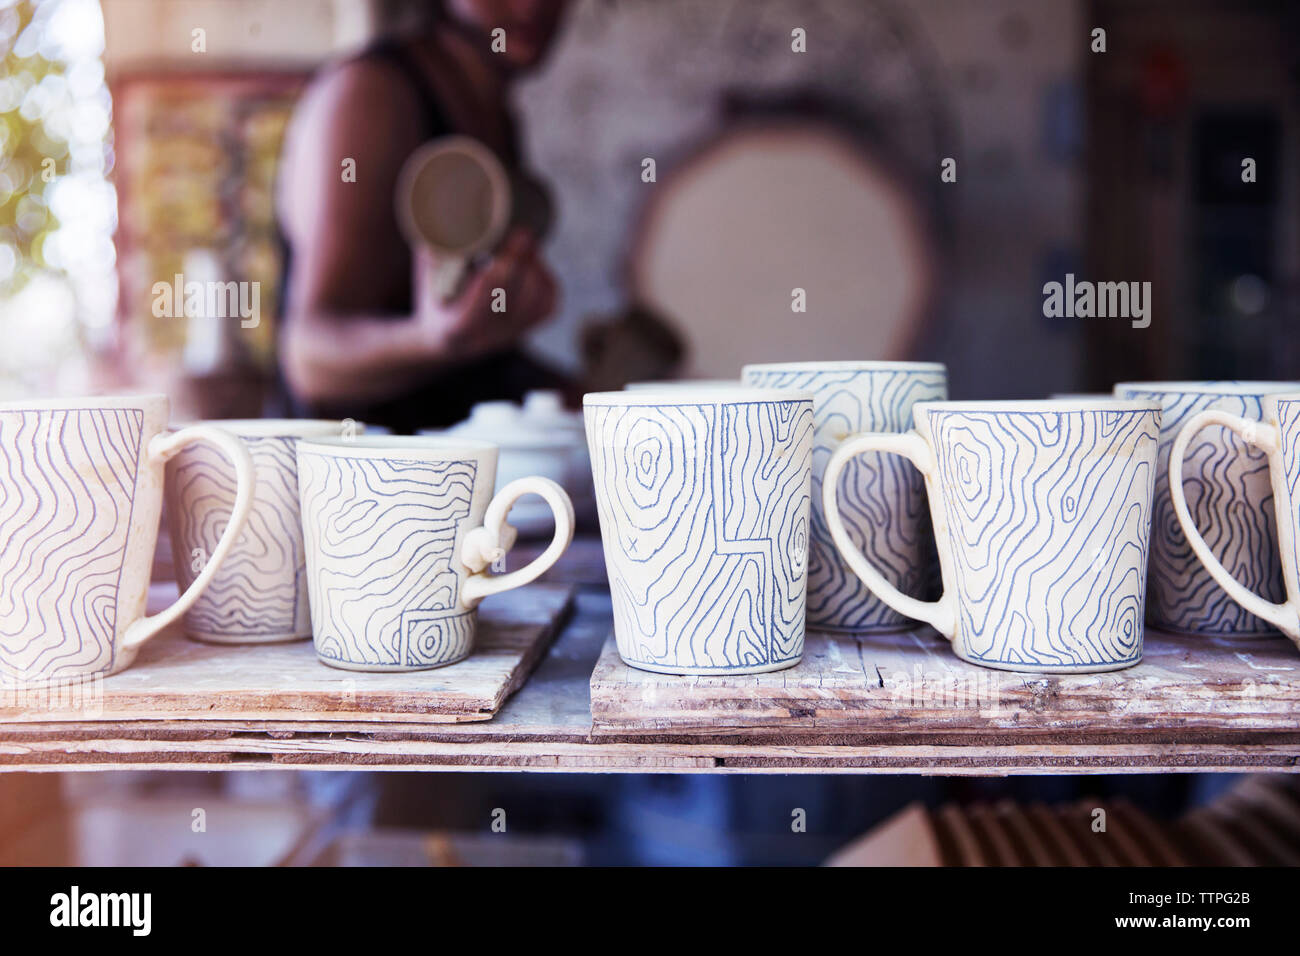 Clay Cups High Resolution Stock Photography and Images - Alamy